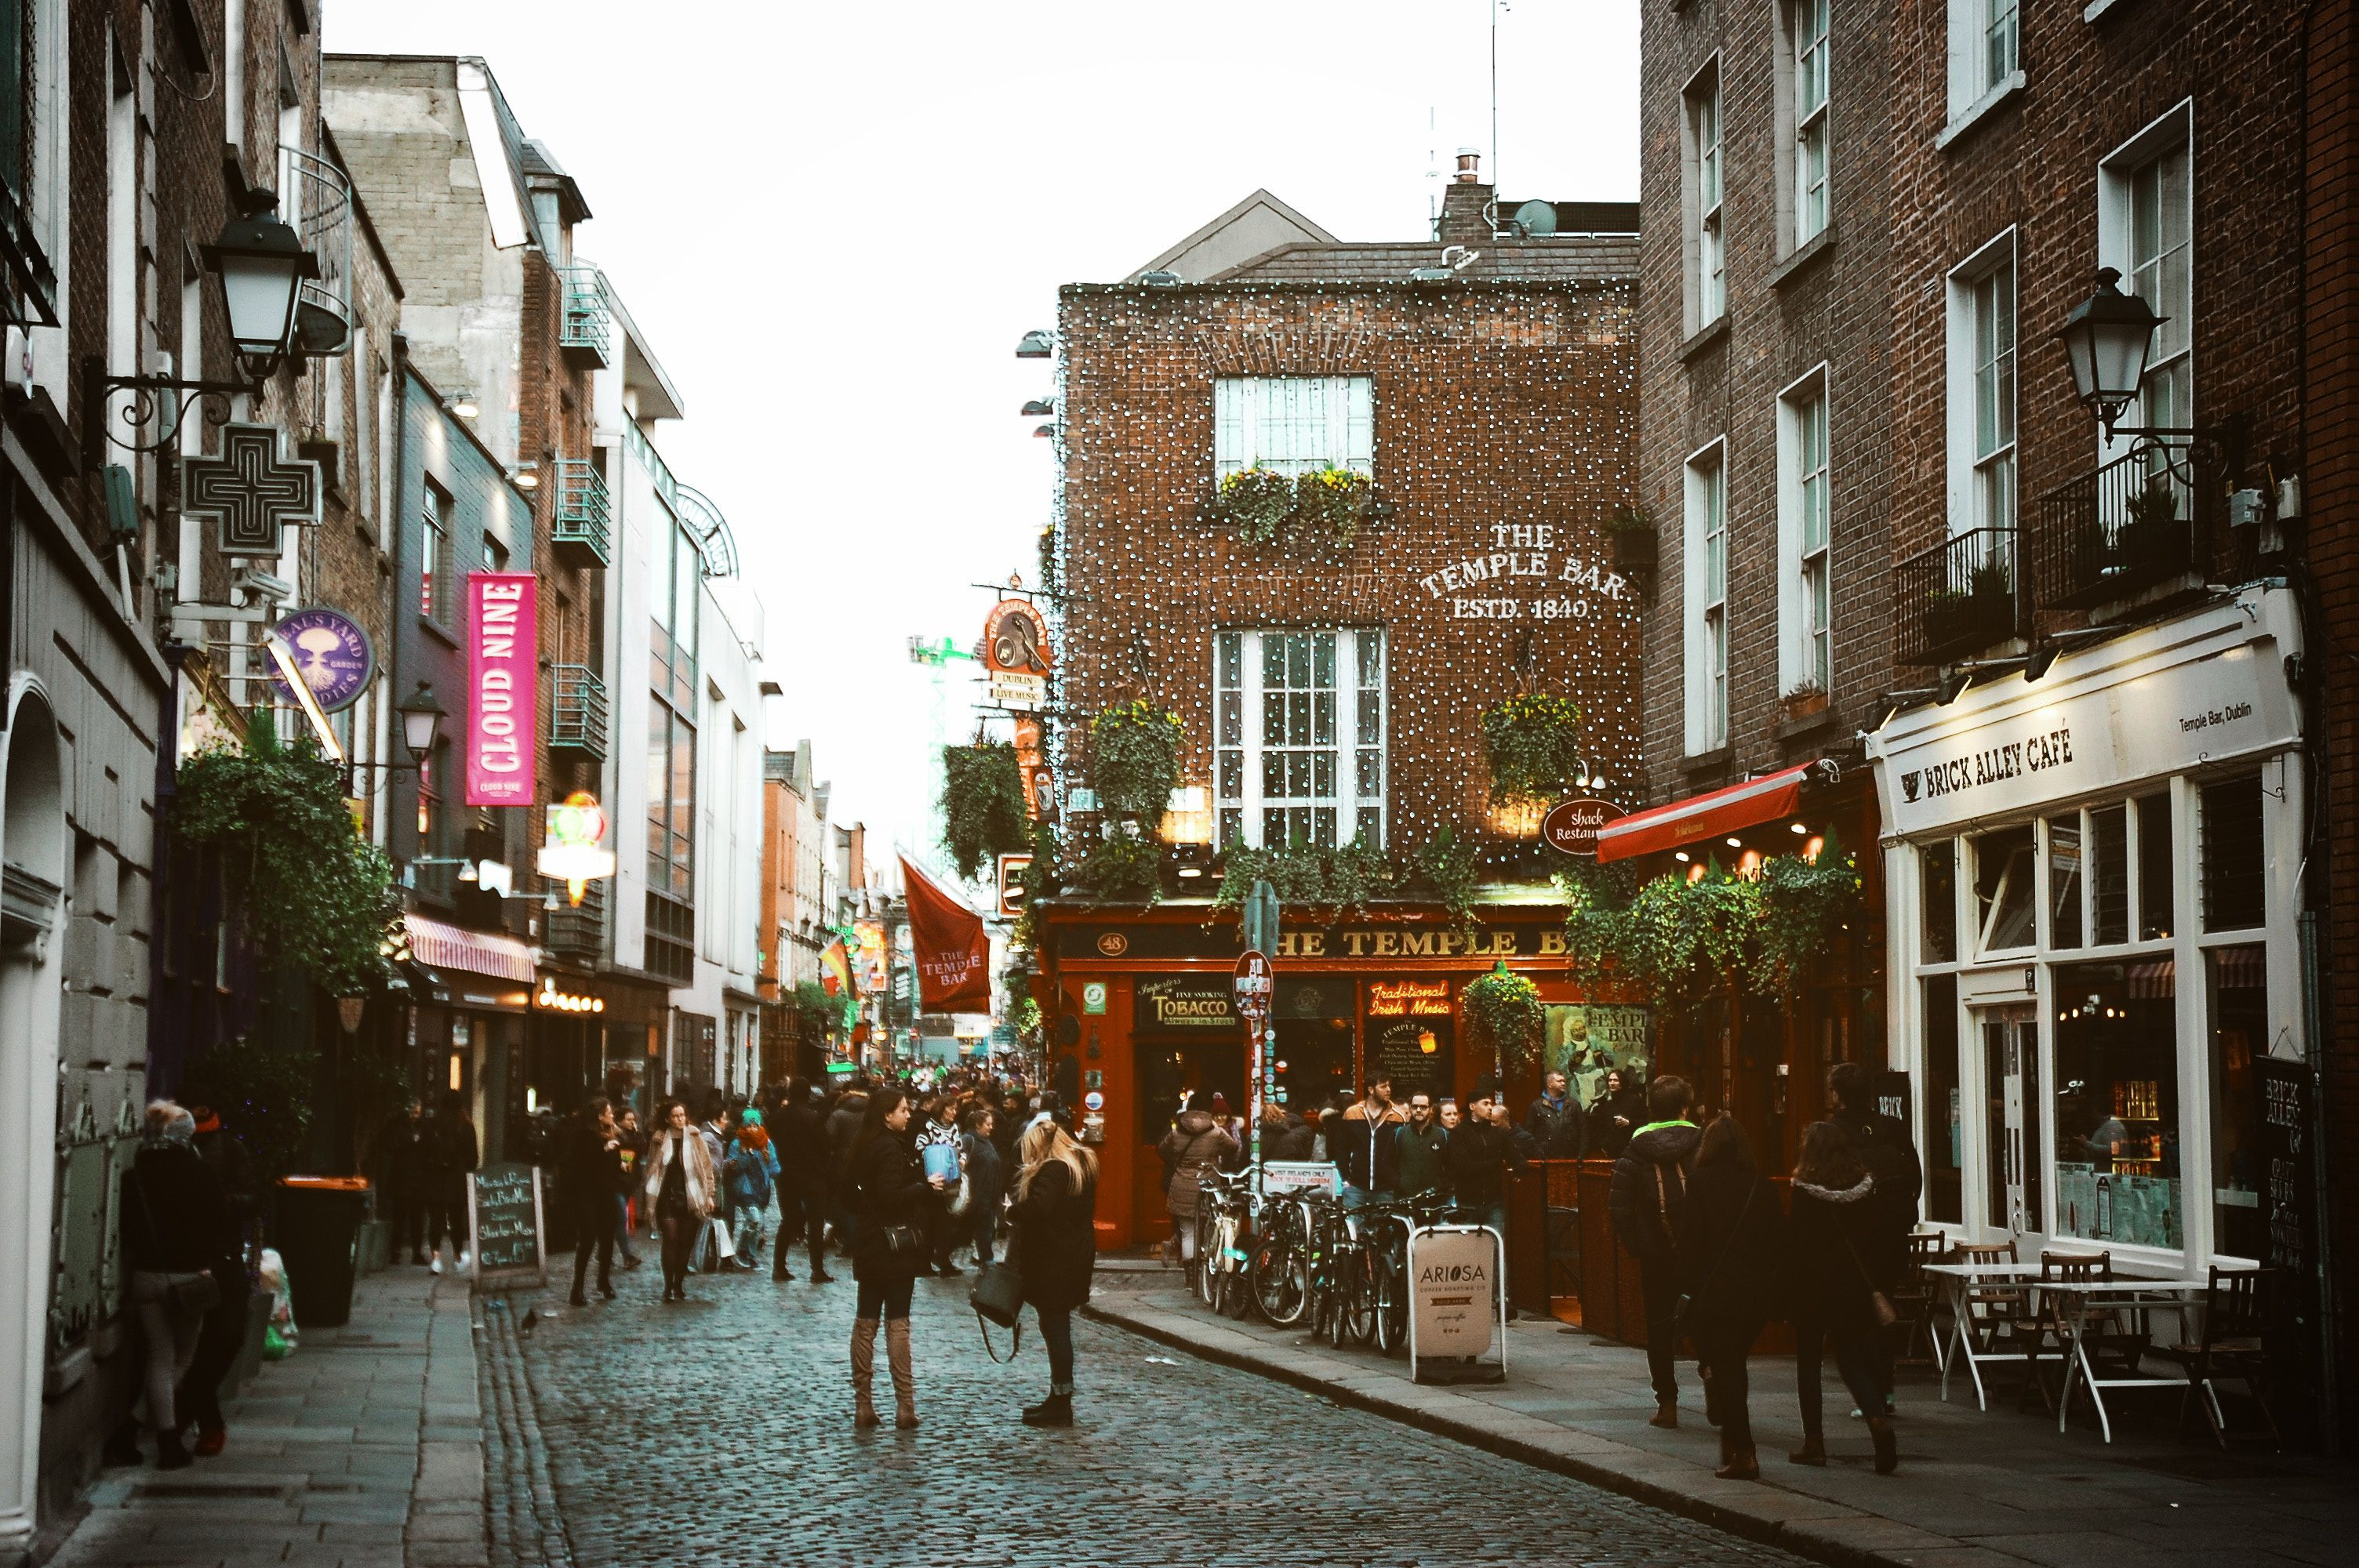 11 of the hardest struggles of dating in Dublin The Daily Edge